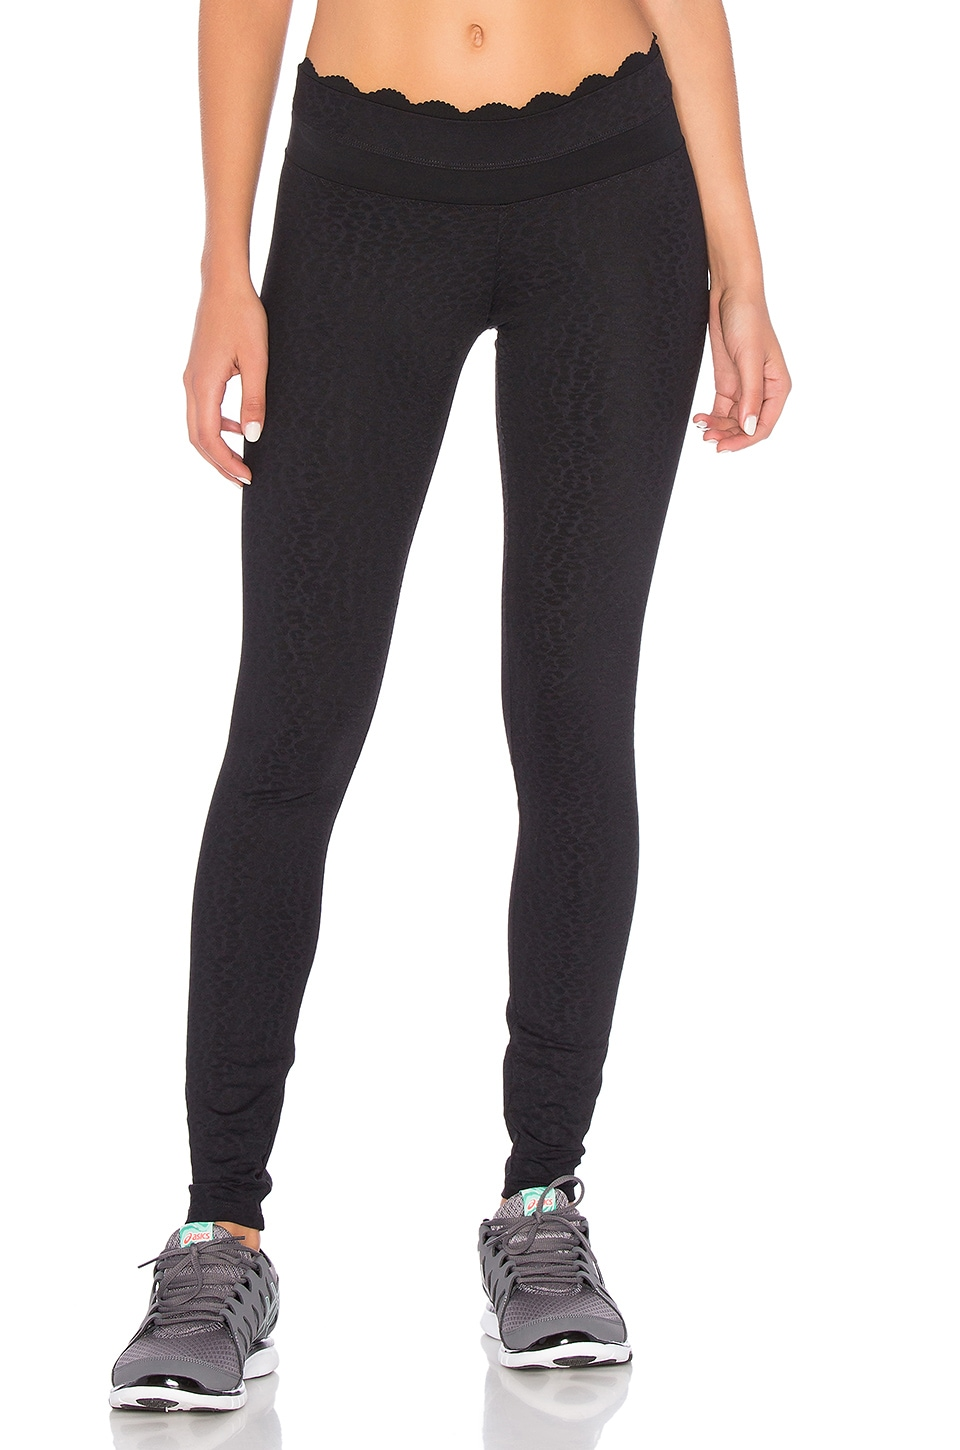 Into the Moonlight Leggings by Track & Bliss